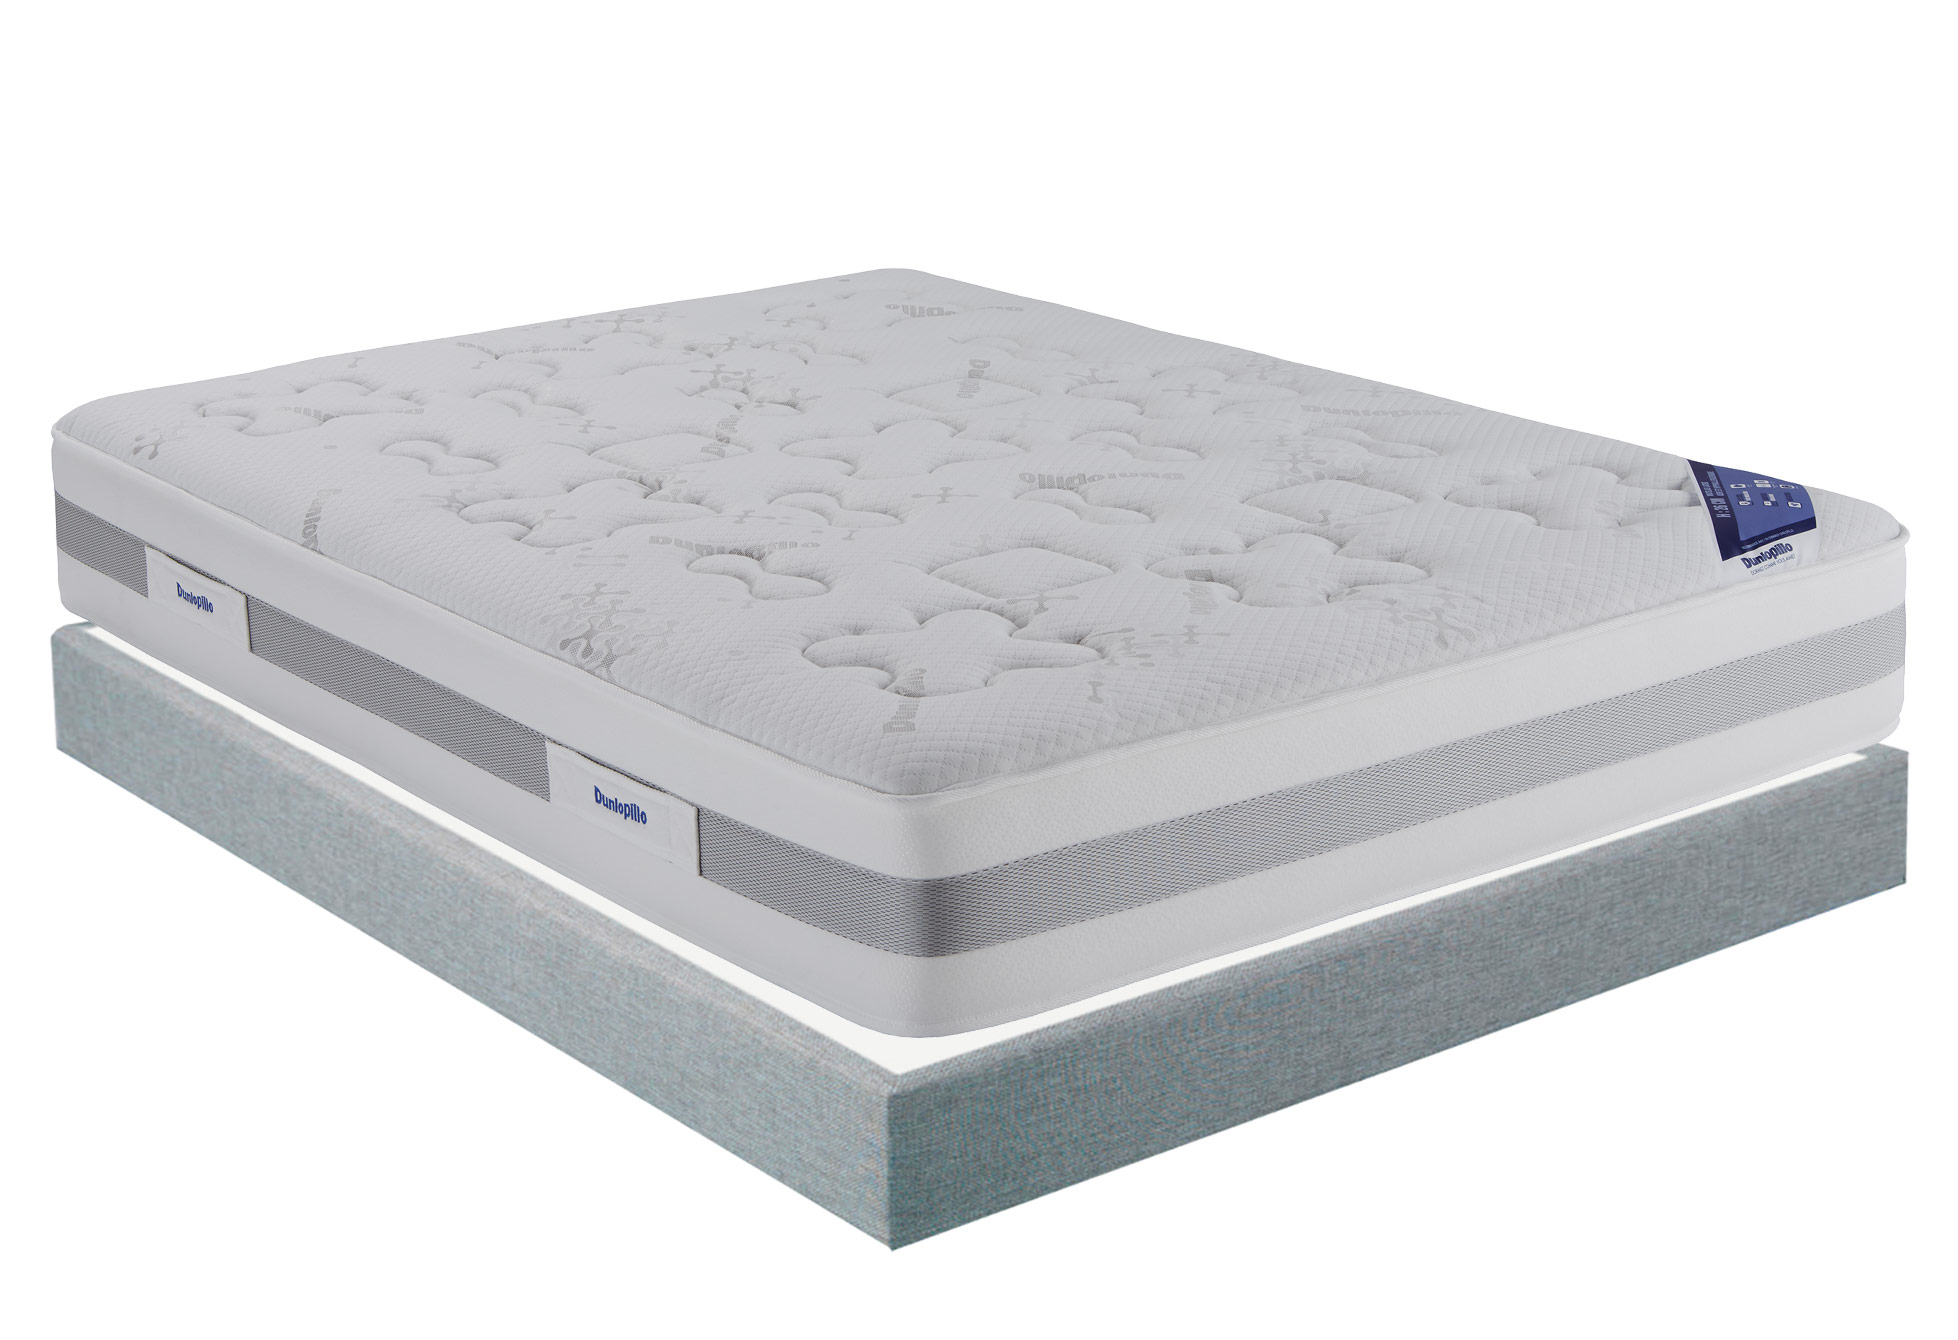 Matelas Dunlopillo Latex 160x200 Ensembles Literie Connecting 5 Madison 15 Dunlopillo